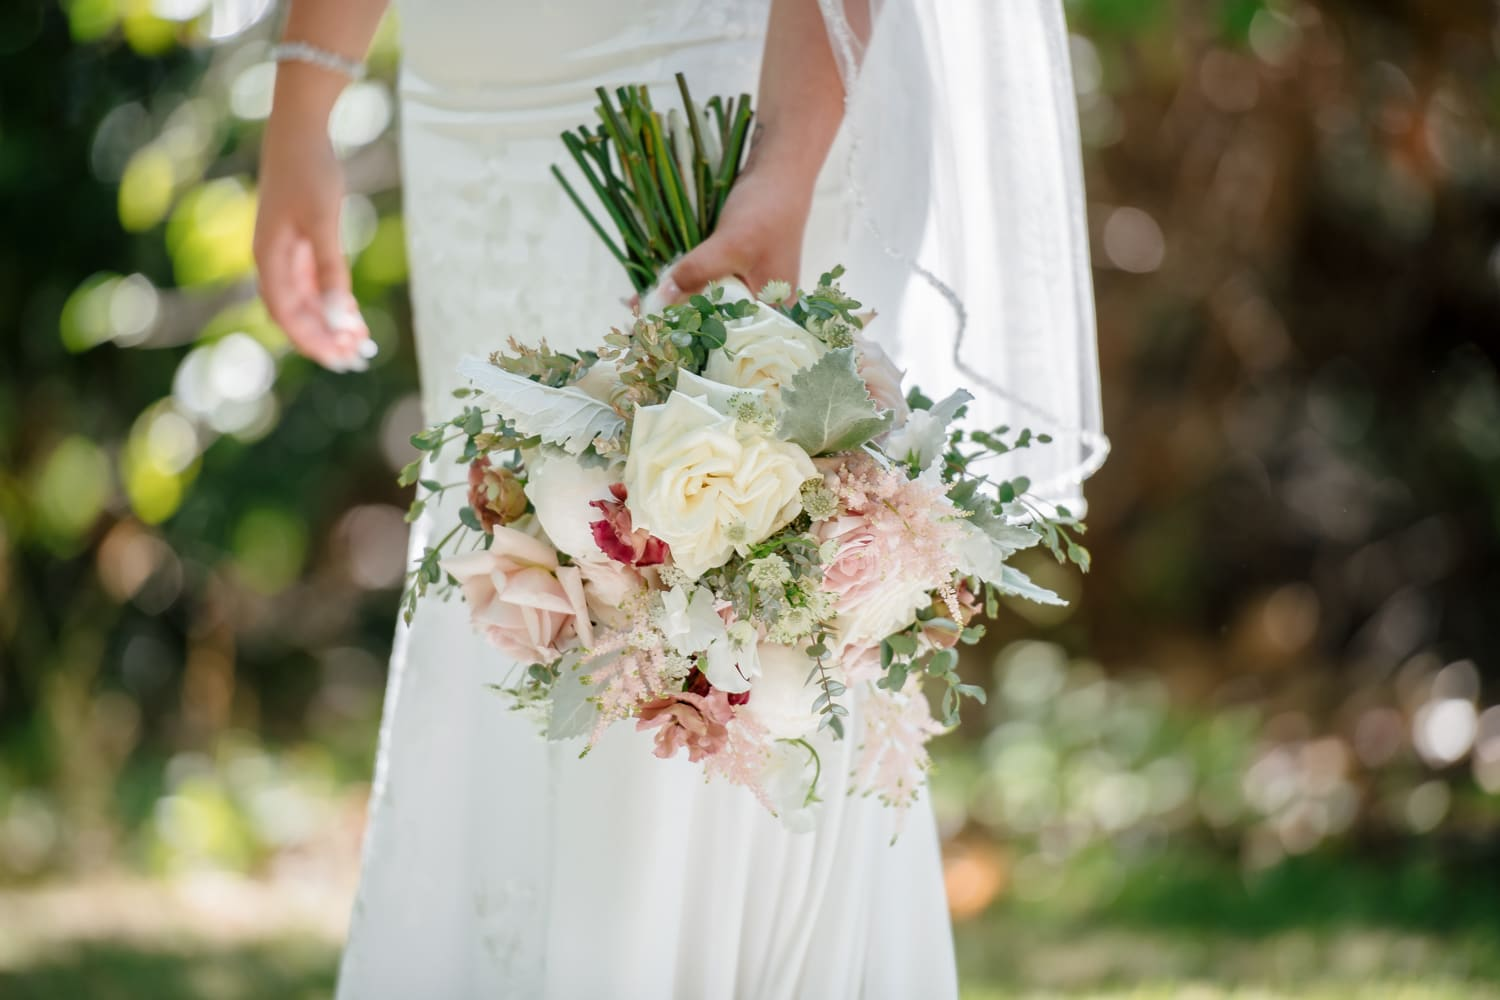 Bridal bouquet for Stone House wedding in Temecula, CA